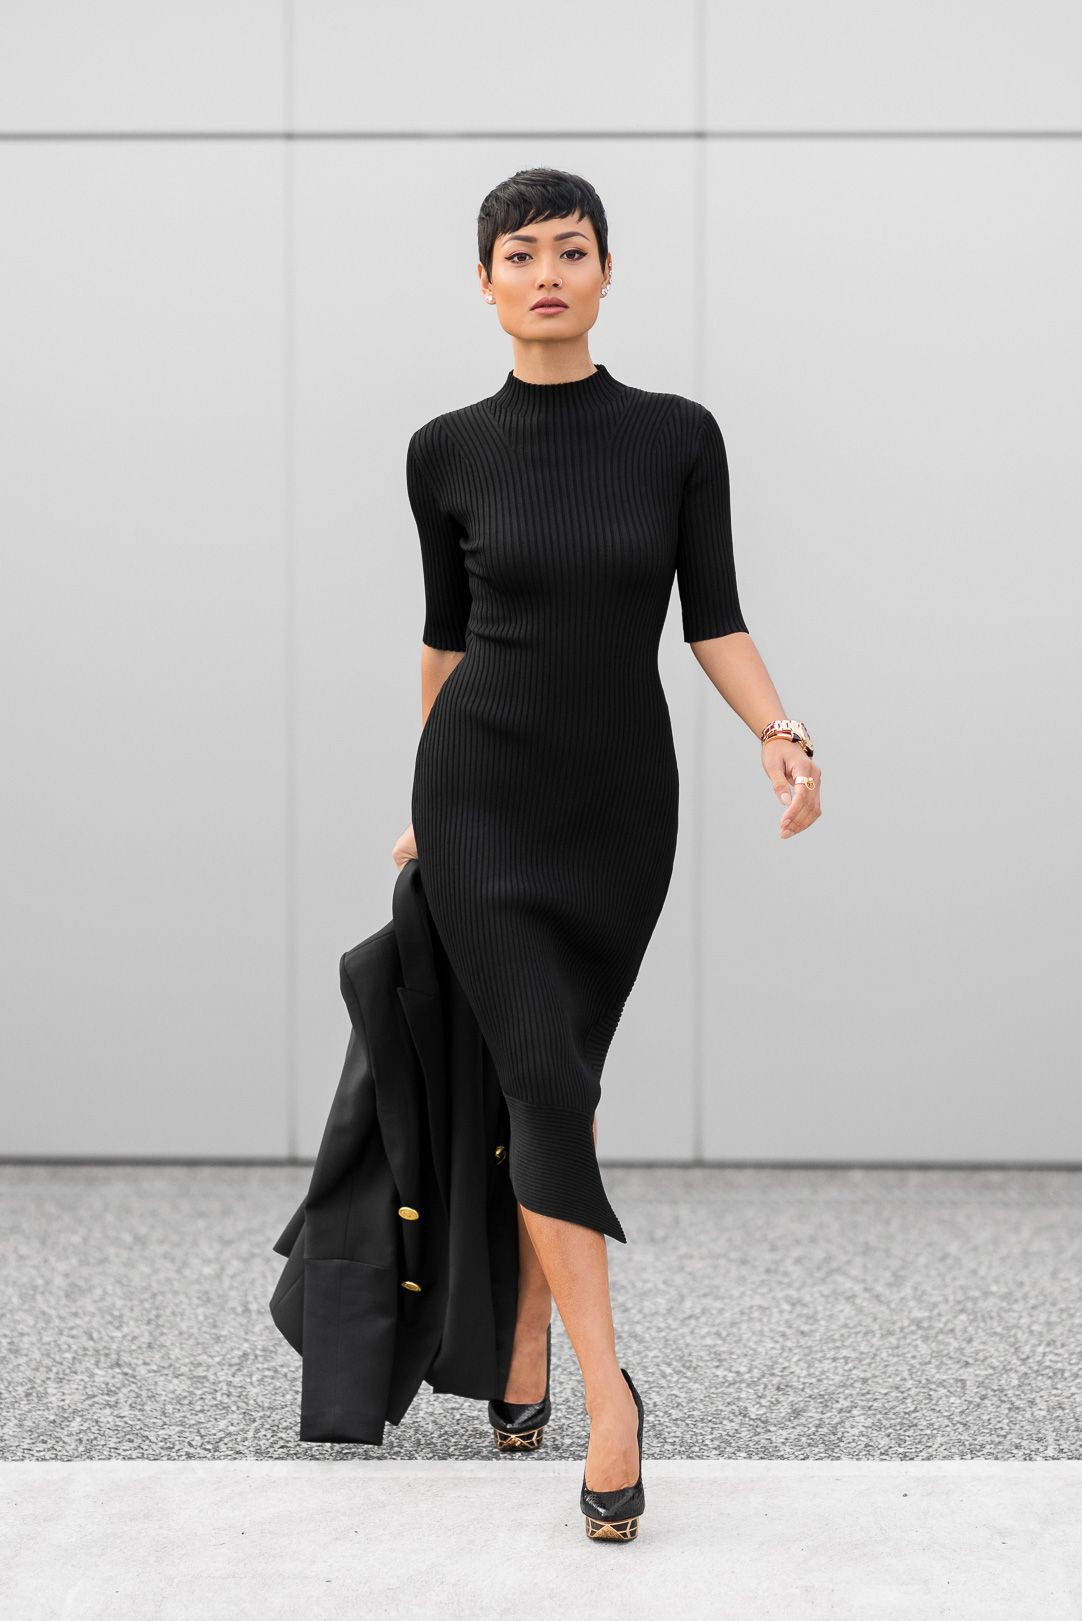 Black instagram fashion with little black dress, cocktail dress, evening gown